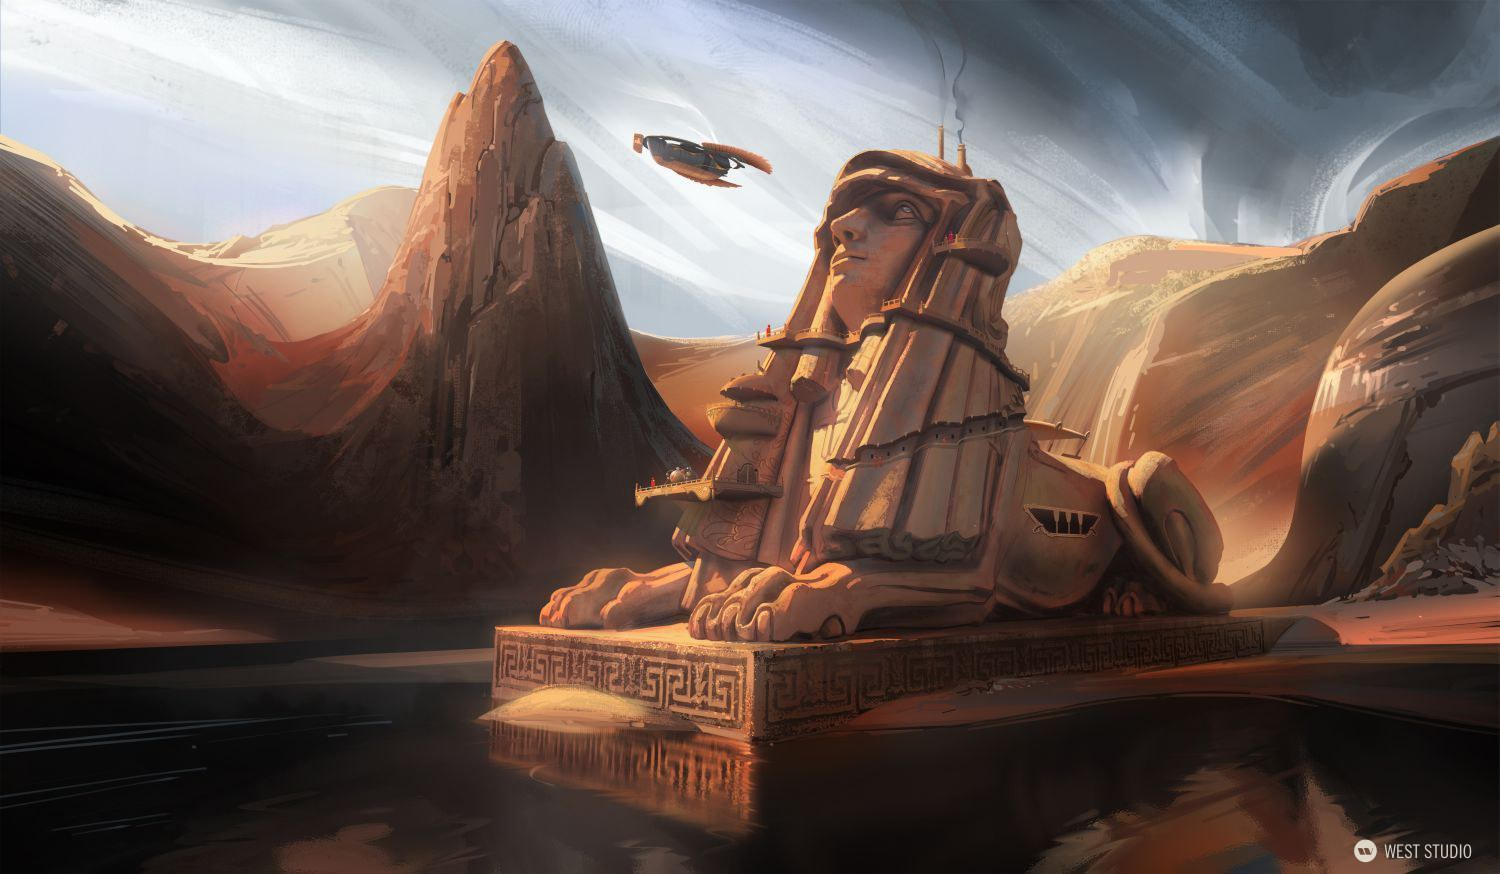 sphinx, mysterious, temple, desert